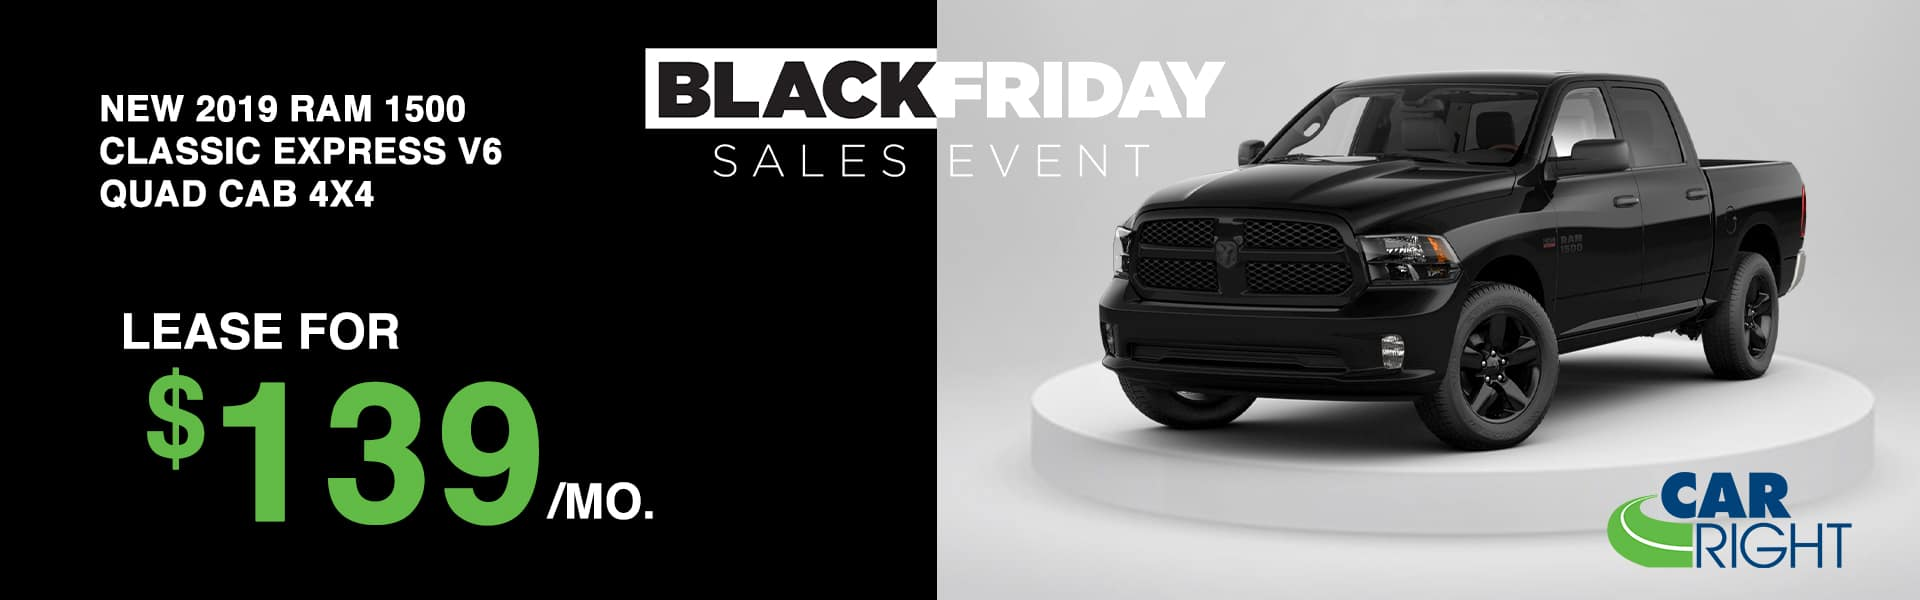 CARRIGHT-2019RAMCLASSIC Carright moon township Pittsburgh diehl auto Chrysler dodge jeep ram Black Friday sales event lease special new vehicle special sale year end savings employee pricing plus